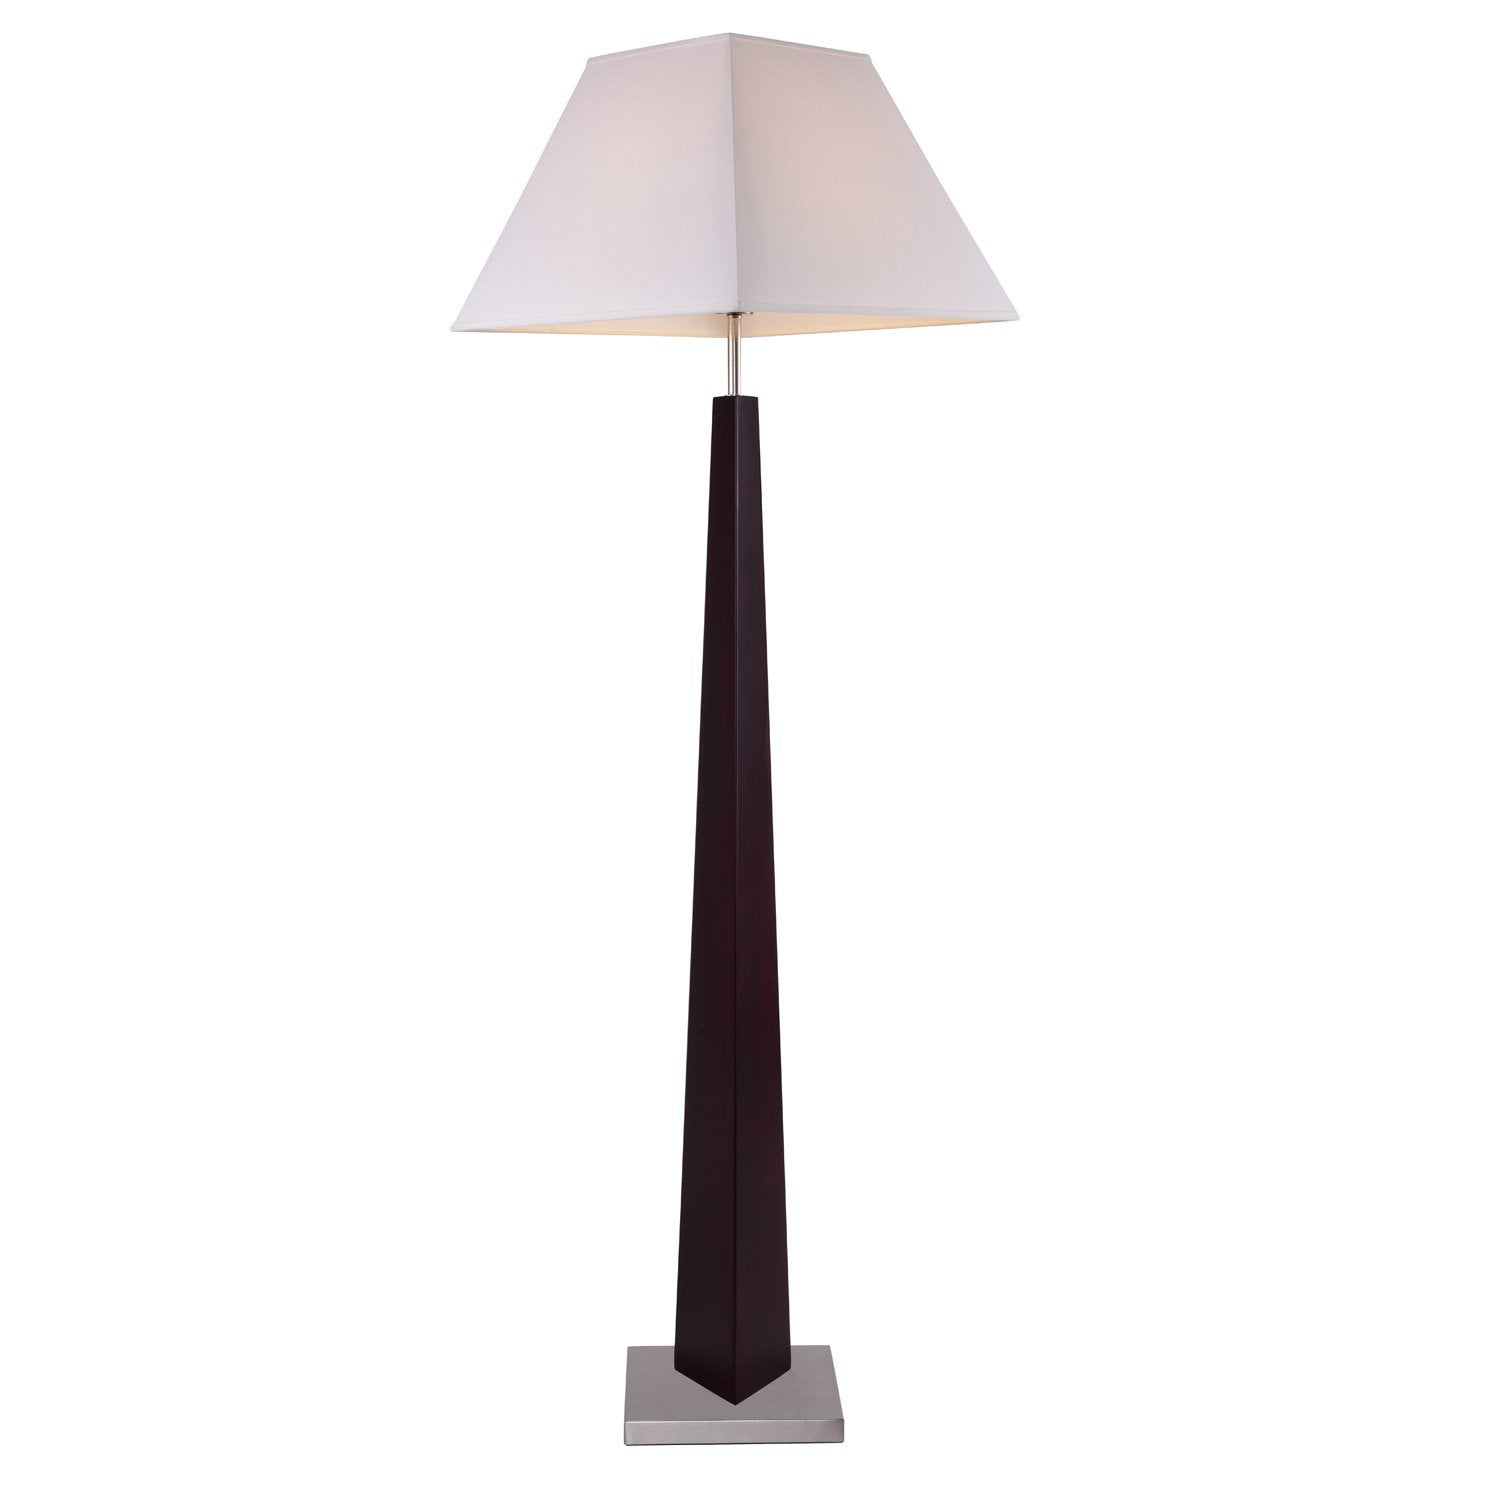 lampadaire era 162 cm blanc 60 w leroy merlin. Black Bedroom Furniture Sets. Home Design Ideas